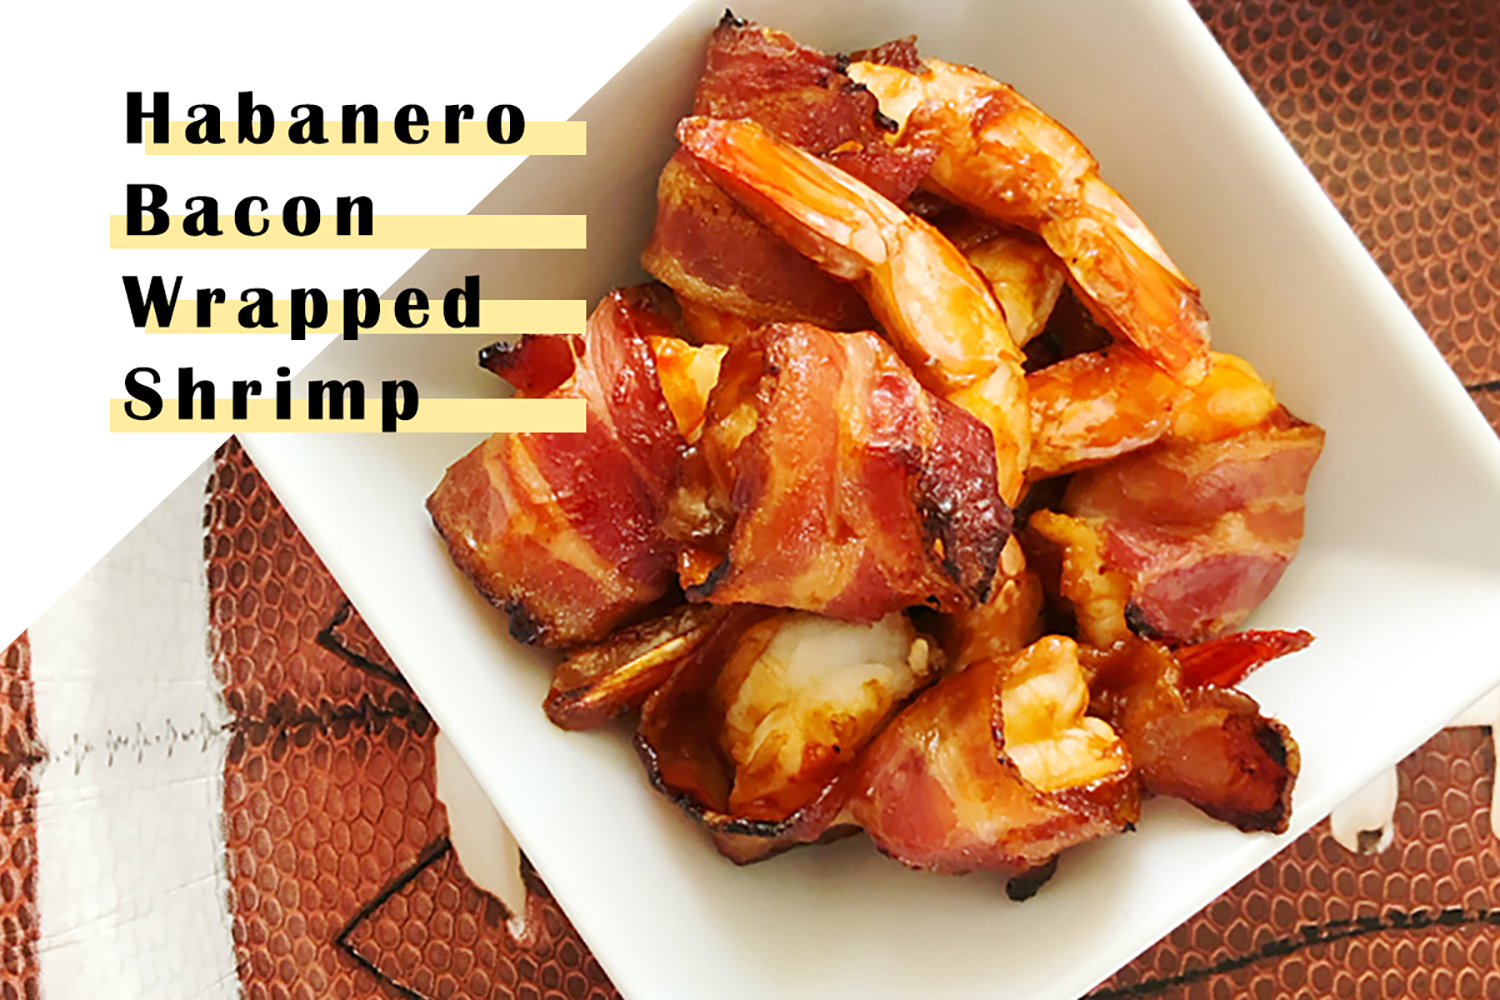 Habanero Bacon Wrapped Shrimp